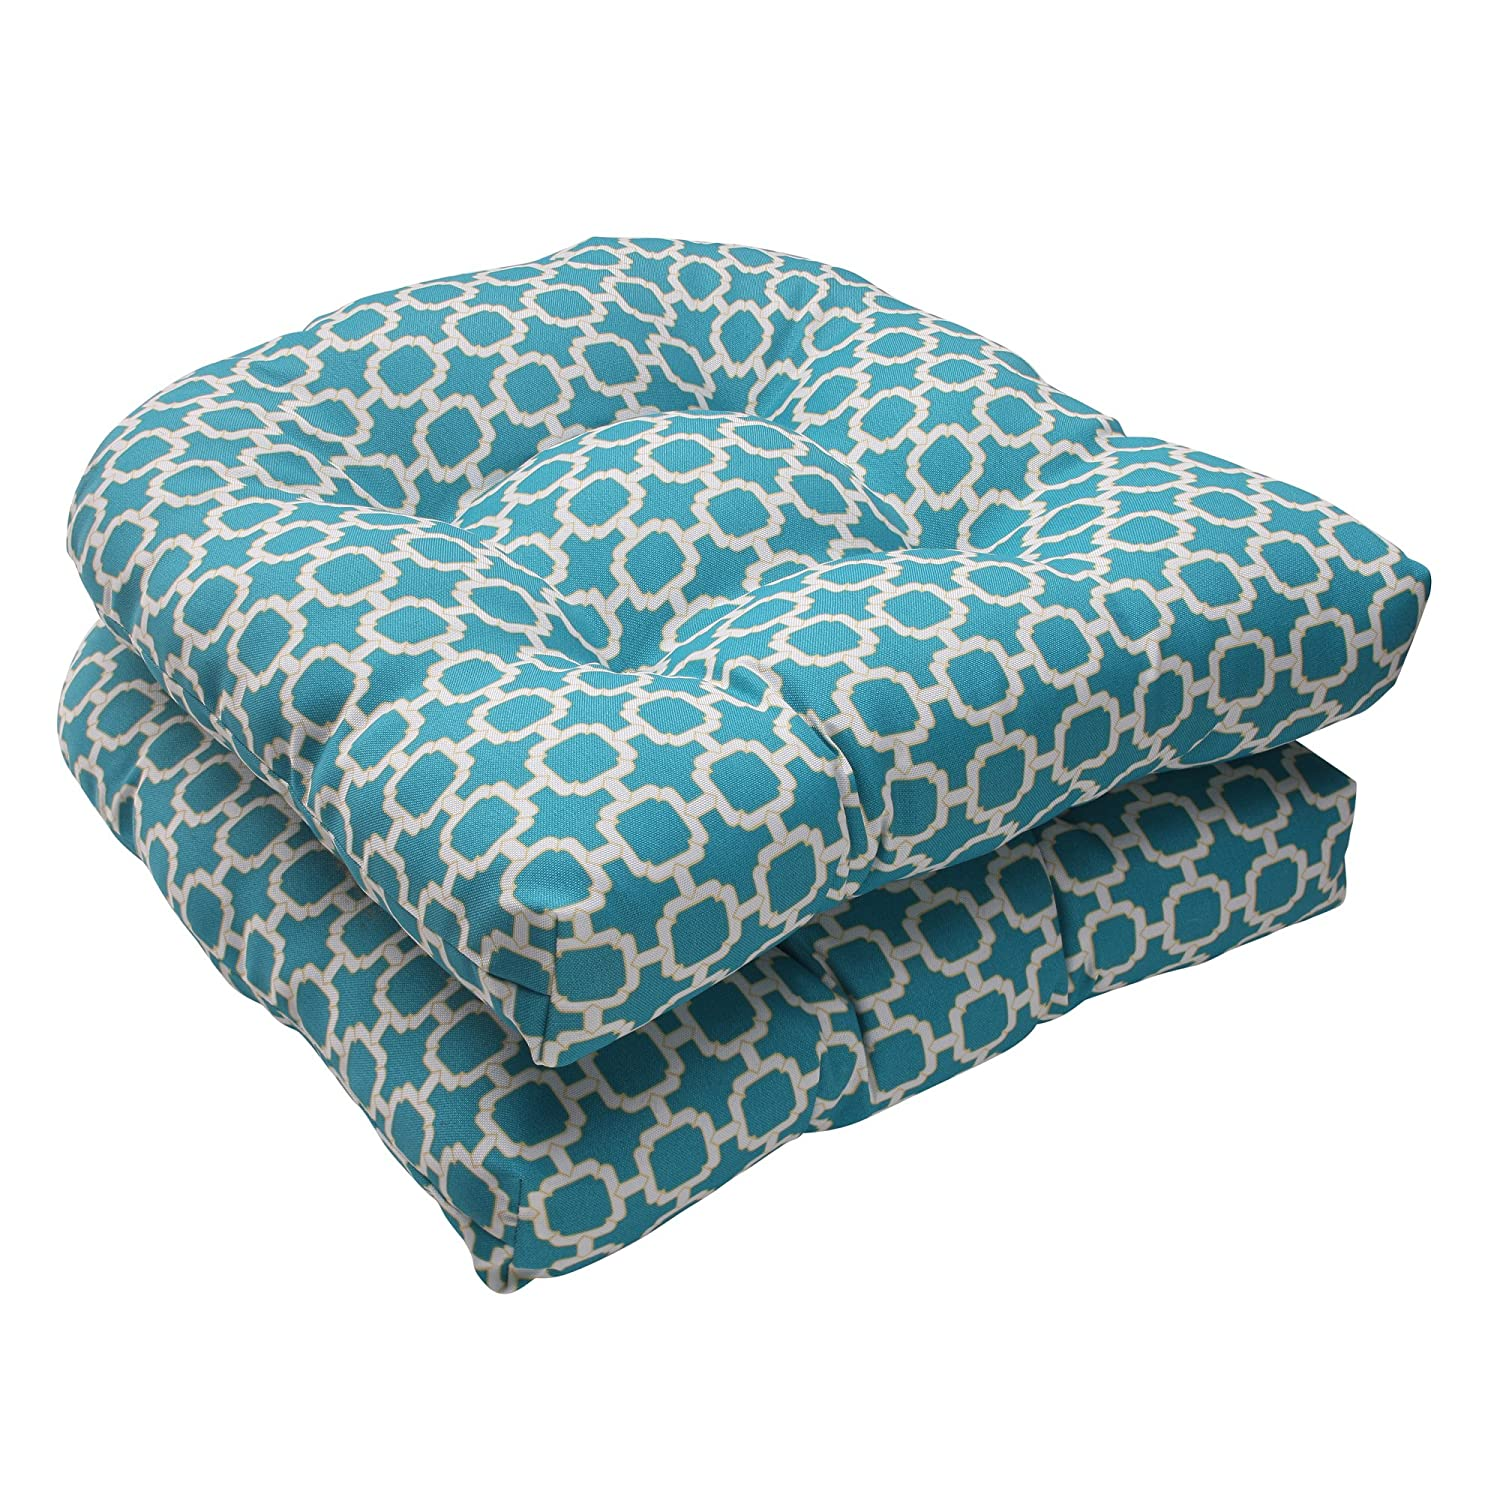 amazoncom pillow perfect hockley wicker seat cushion teal set of 2 home u0026 kitchen